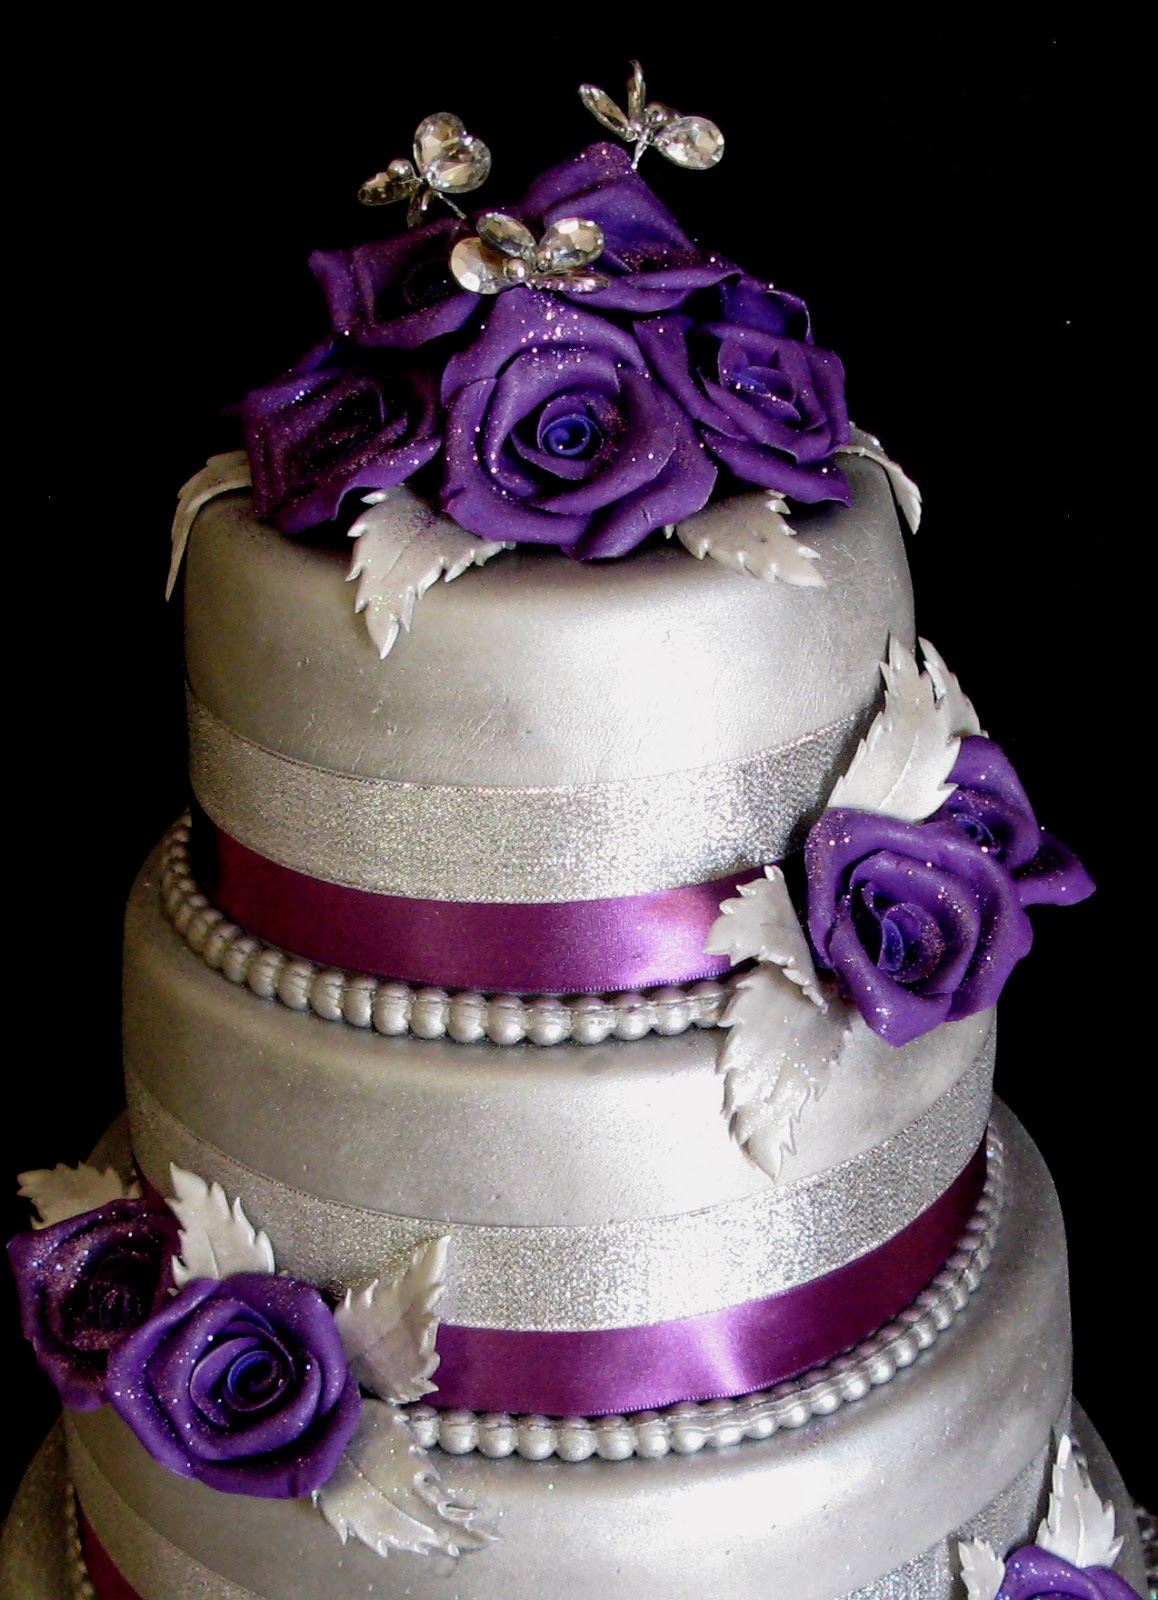 four layer wedding cake purple roses purple and silver wedding Four Layer Wedding Cake Purple Roses and Silver Hue